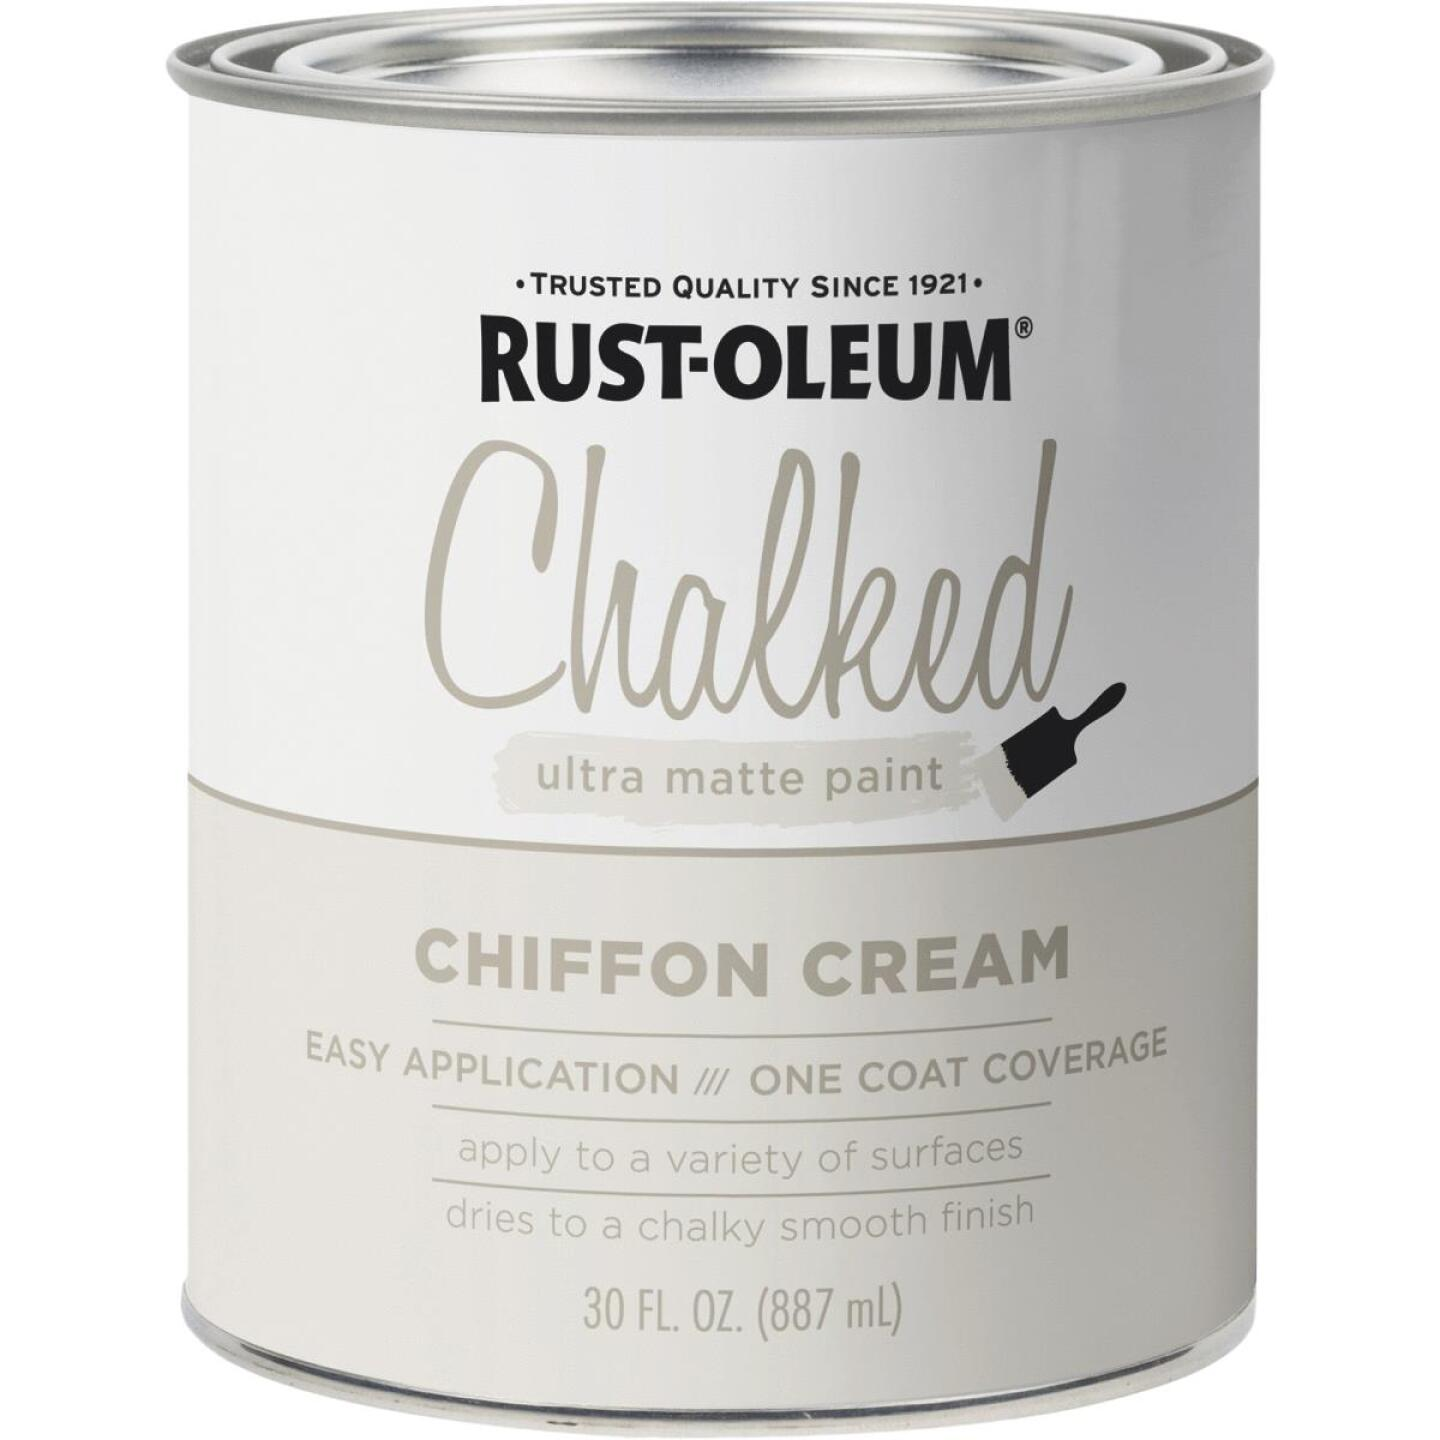 Rust-Oleum Chalked Ultra Matte Chiffon Cream 30 Oz. Chalk Paint Image 1